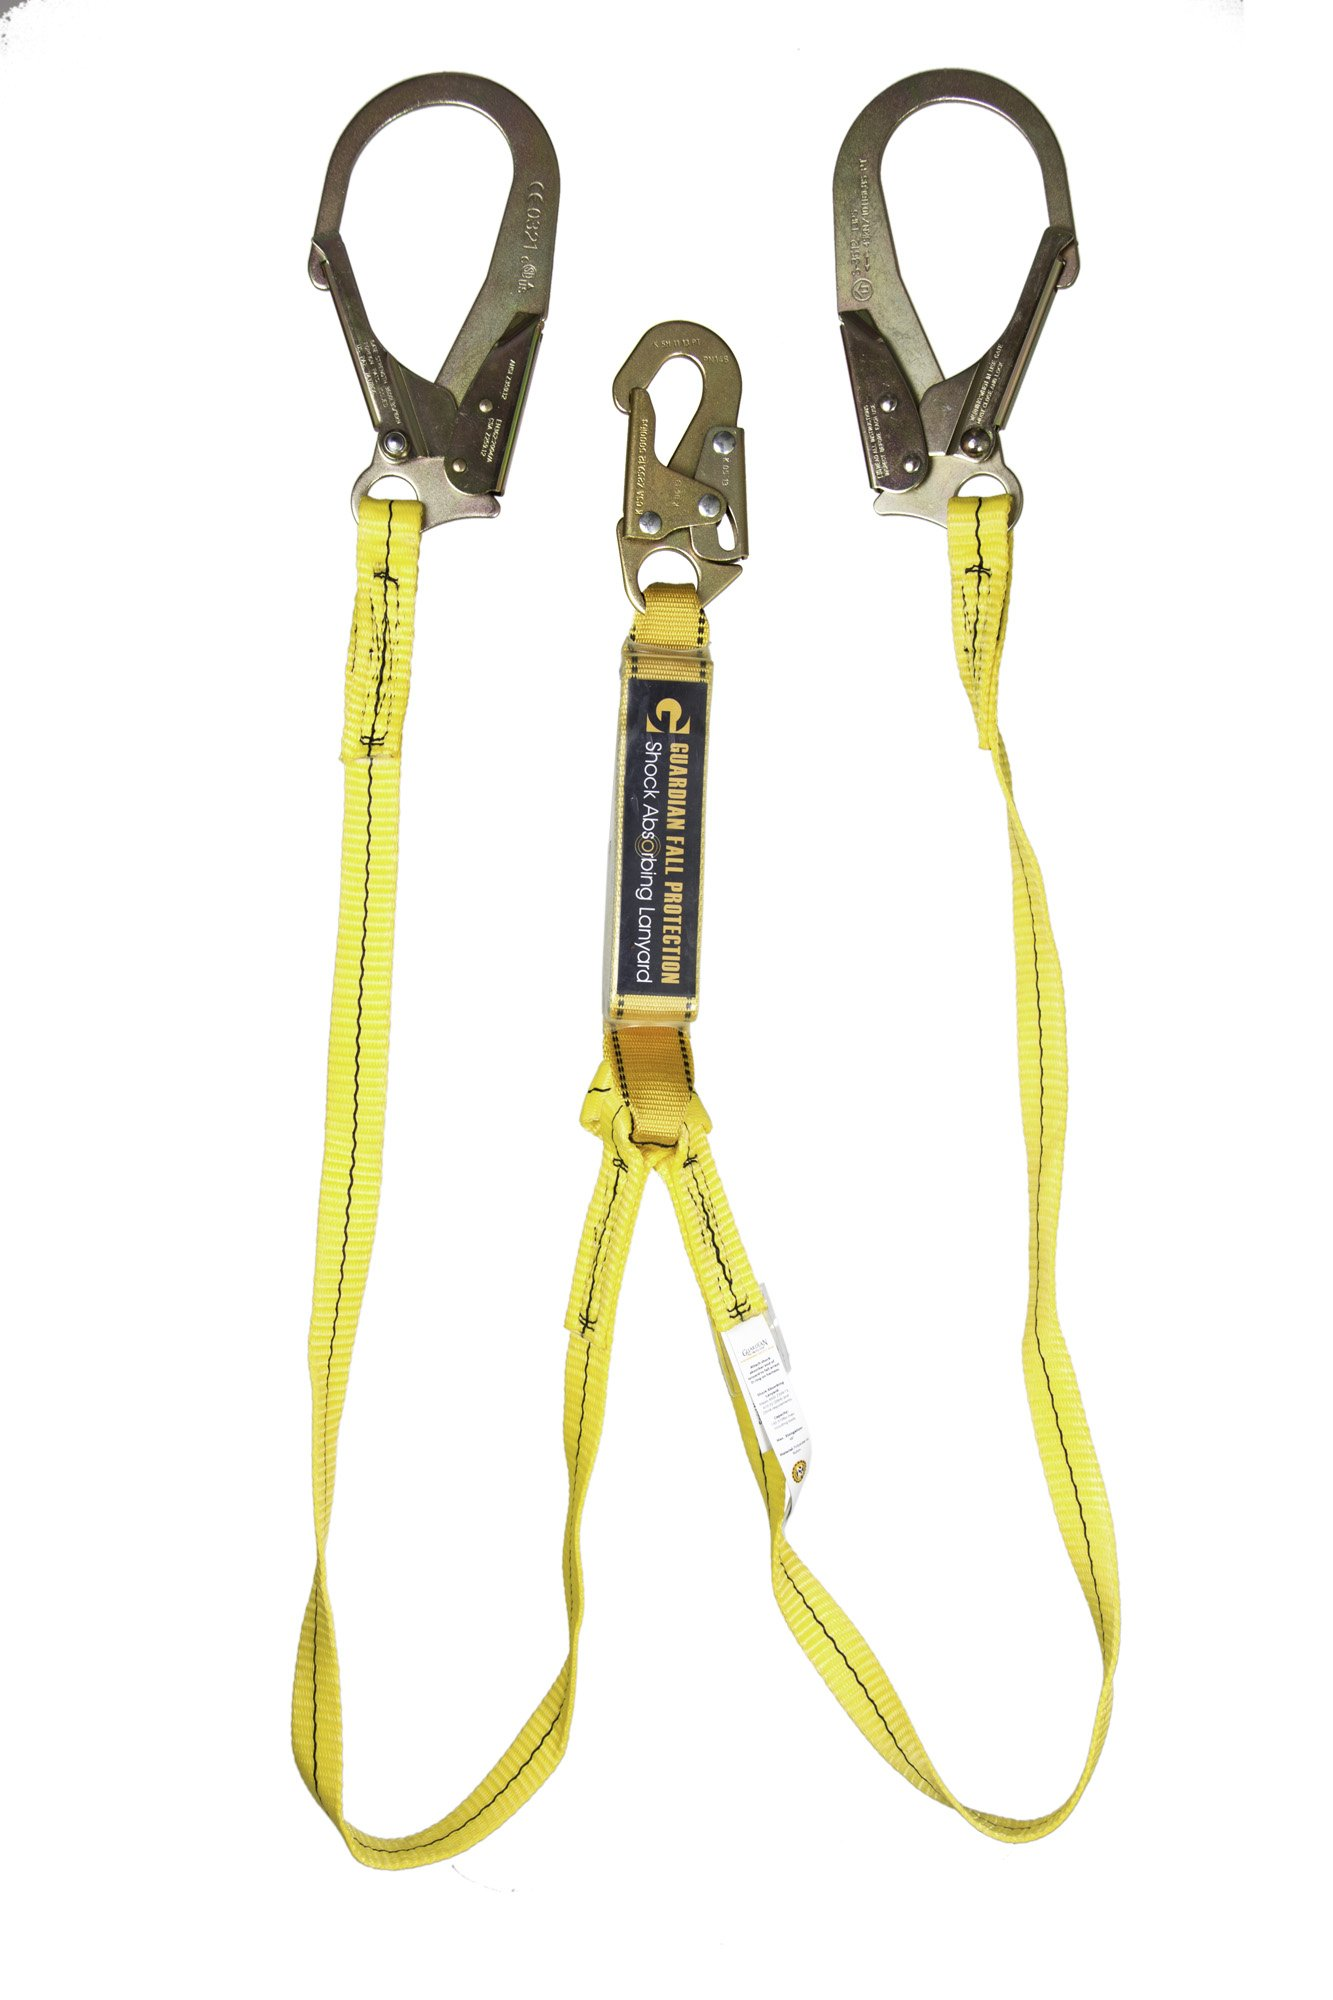 Guardian Fall Protection 01231 6-Foot Double Leg Shock Absorbing Lanyard by Guardian Fall Protection (Image #1)